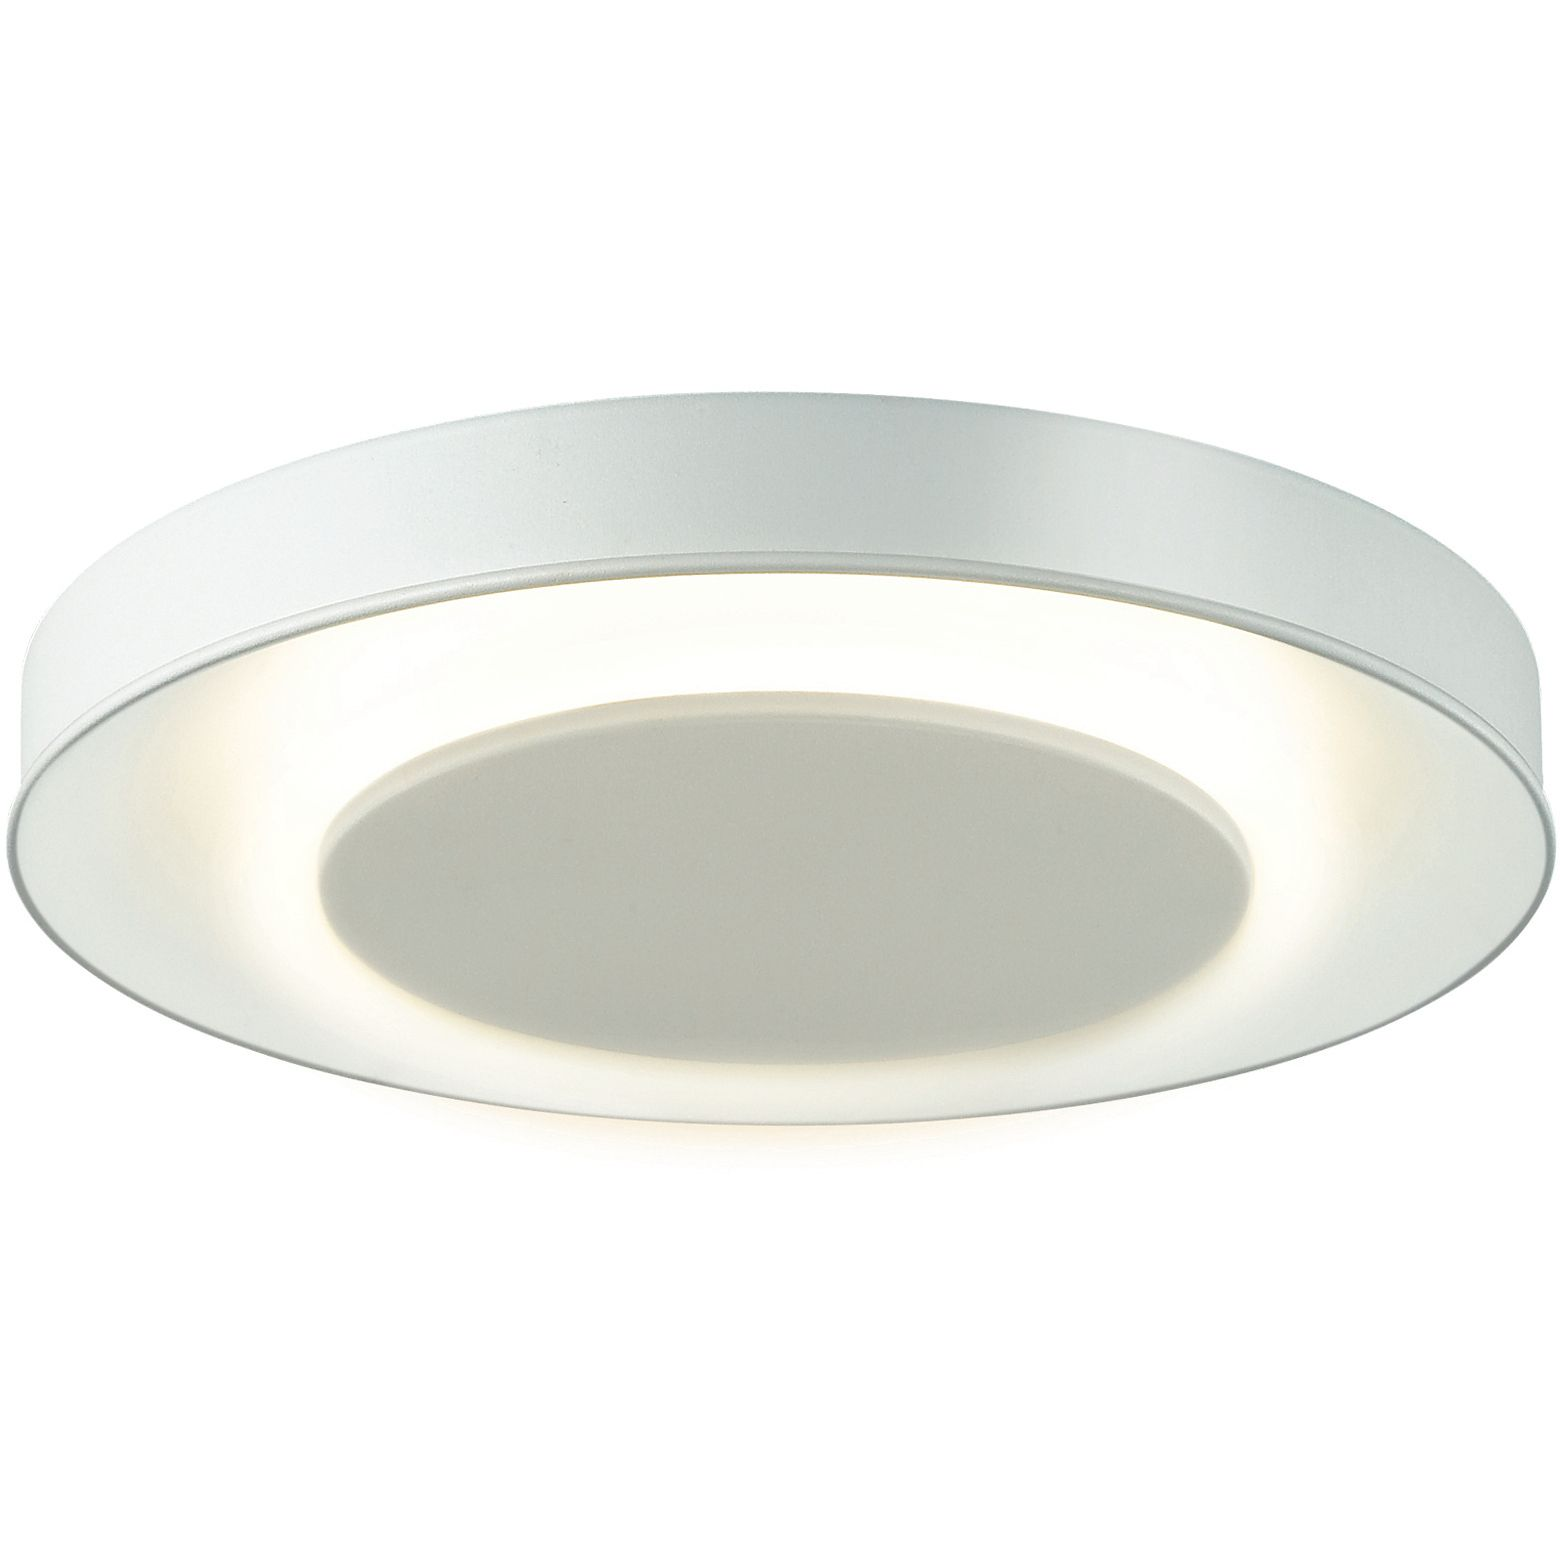 Halo Flush Mount Ceiling Wall Light By Stone Lighting Cl460opwhled Flush Mount Ceiling Stone Lighting Wall Lights